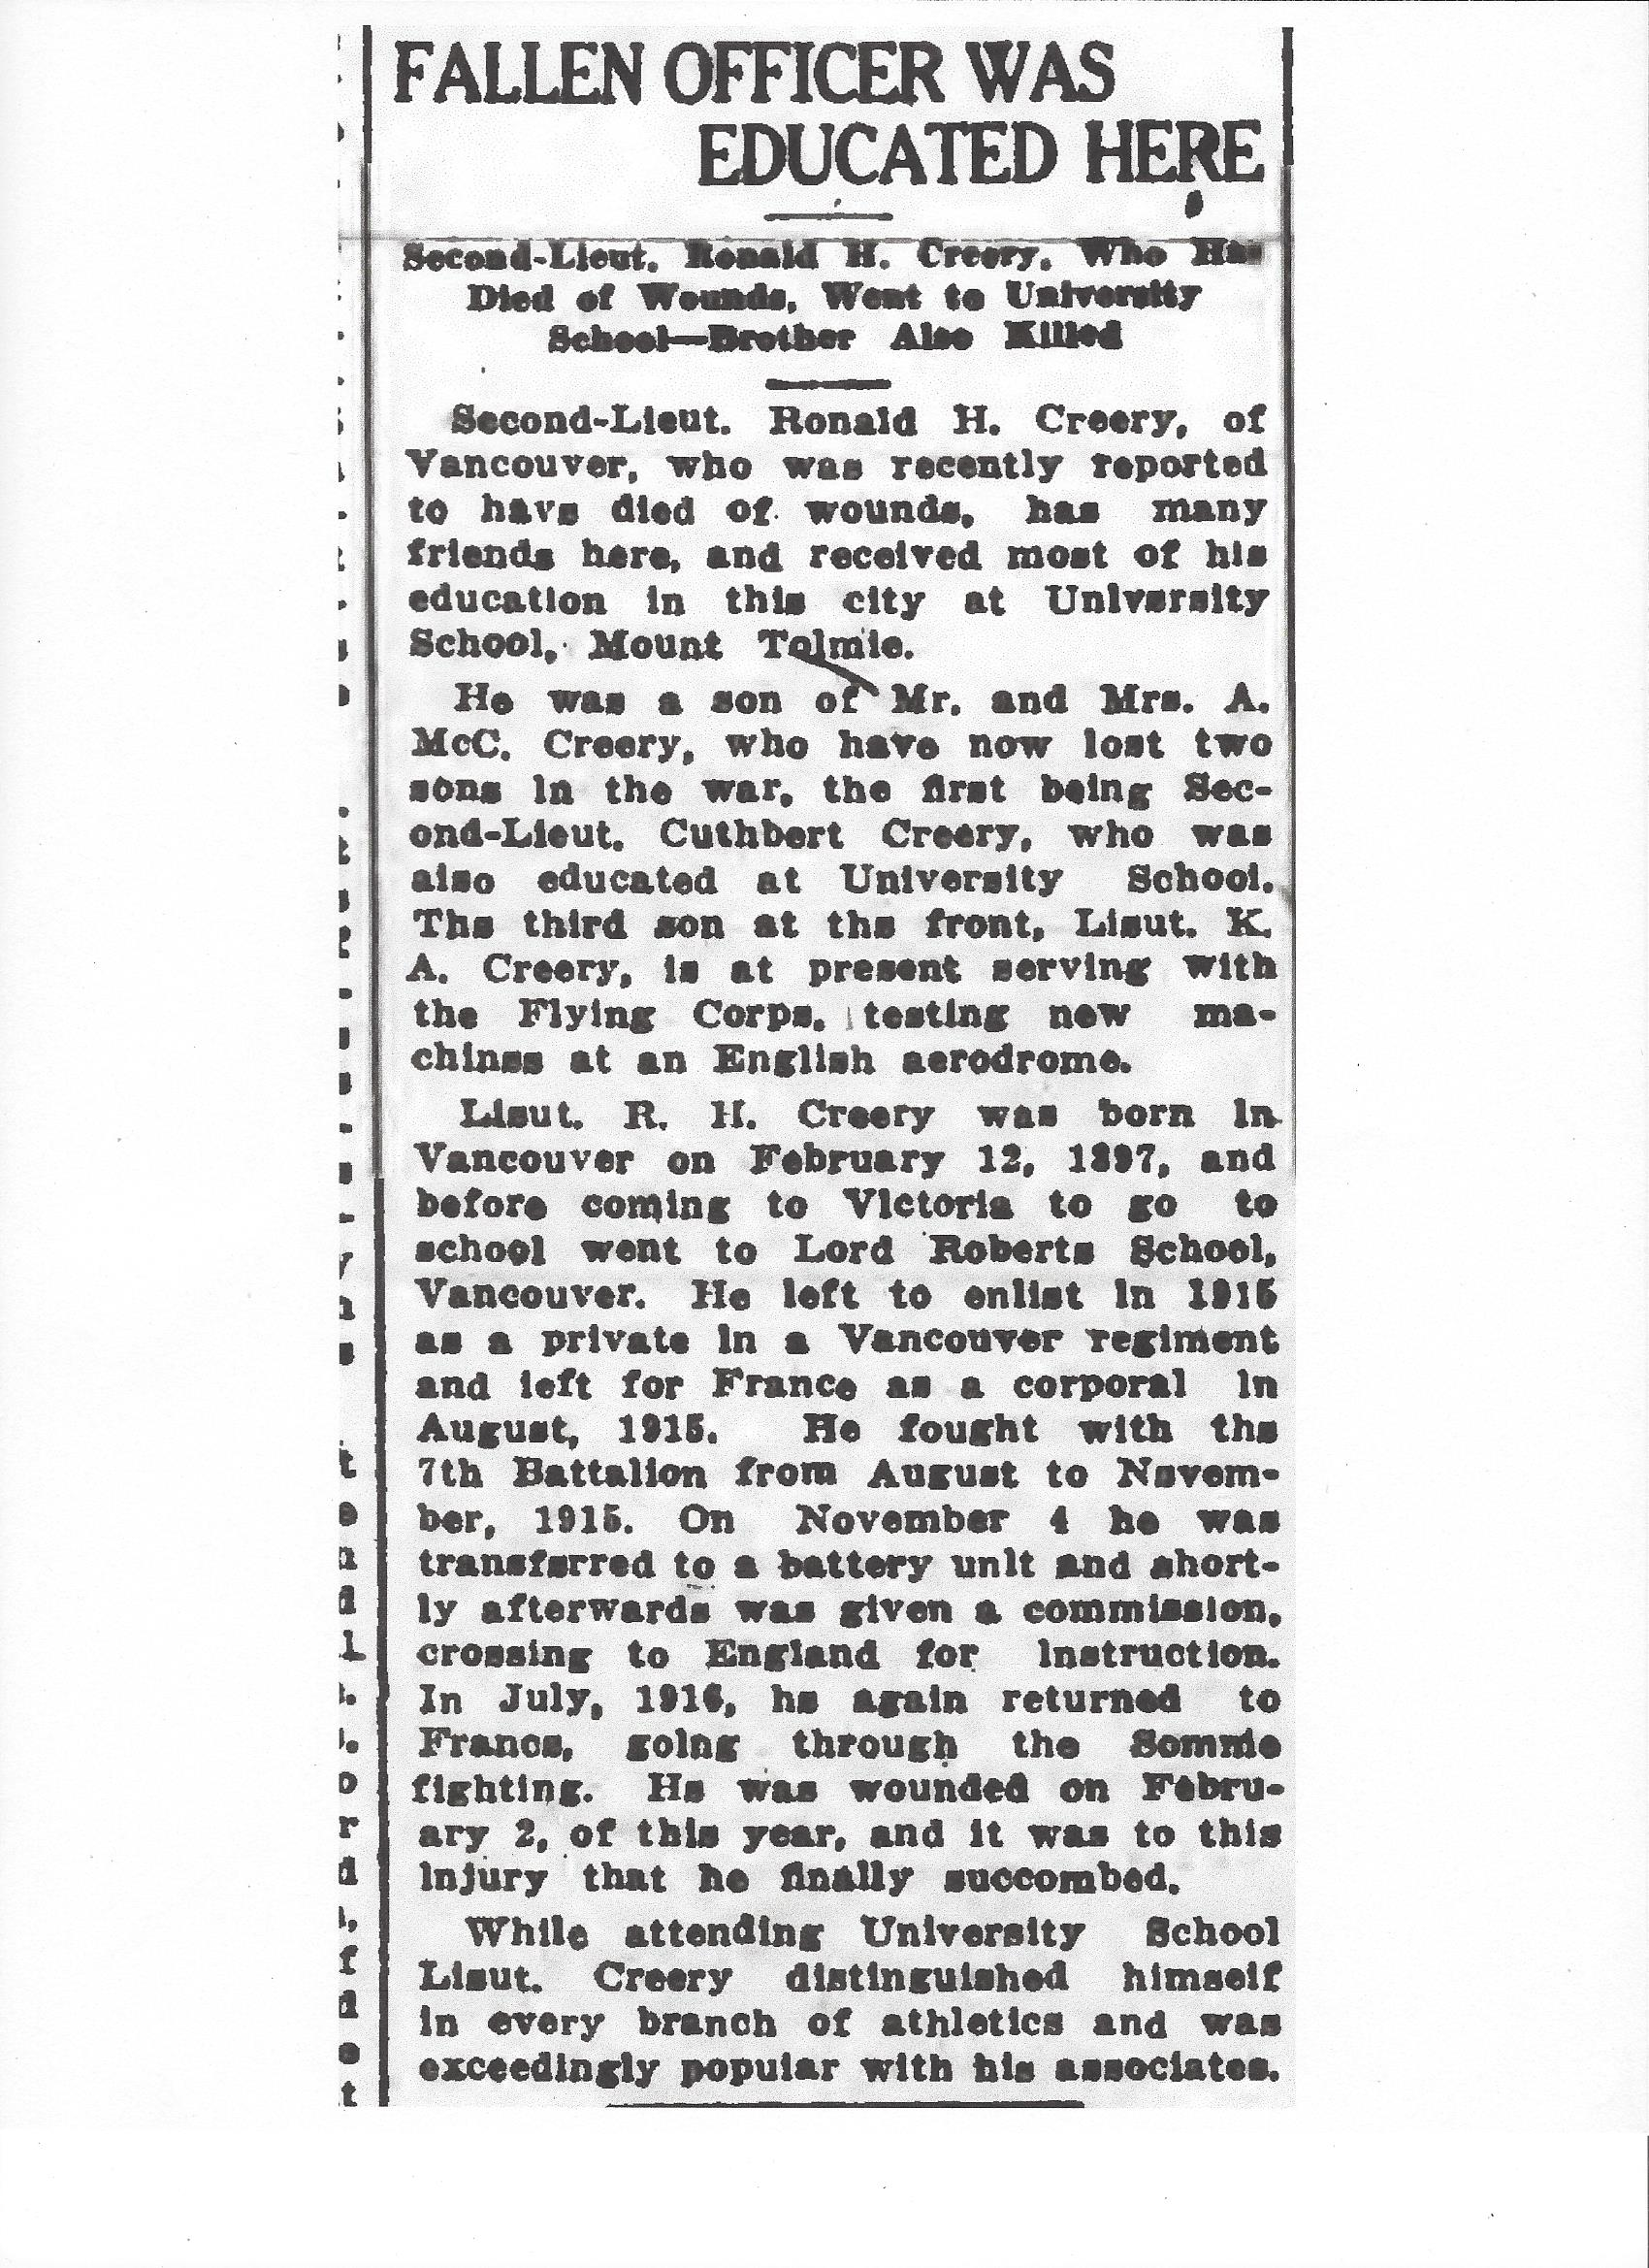 Newspaper clipping – From the Daily Colonist of April 28, 1917. Image taken from web address of http://archive.org/stream/dailycolonist59y120uvic#page/n0/mode/1up